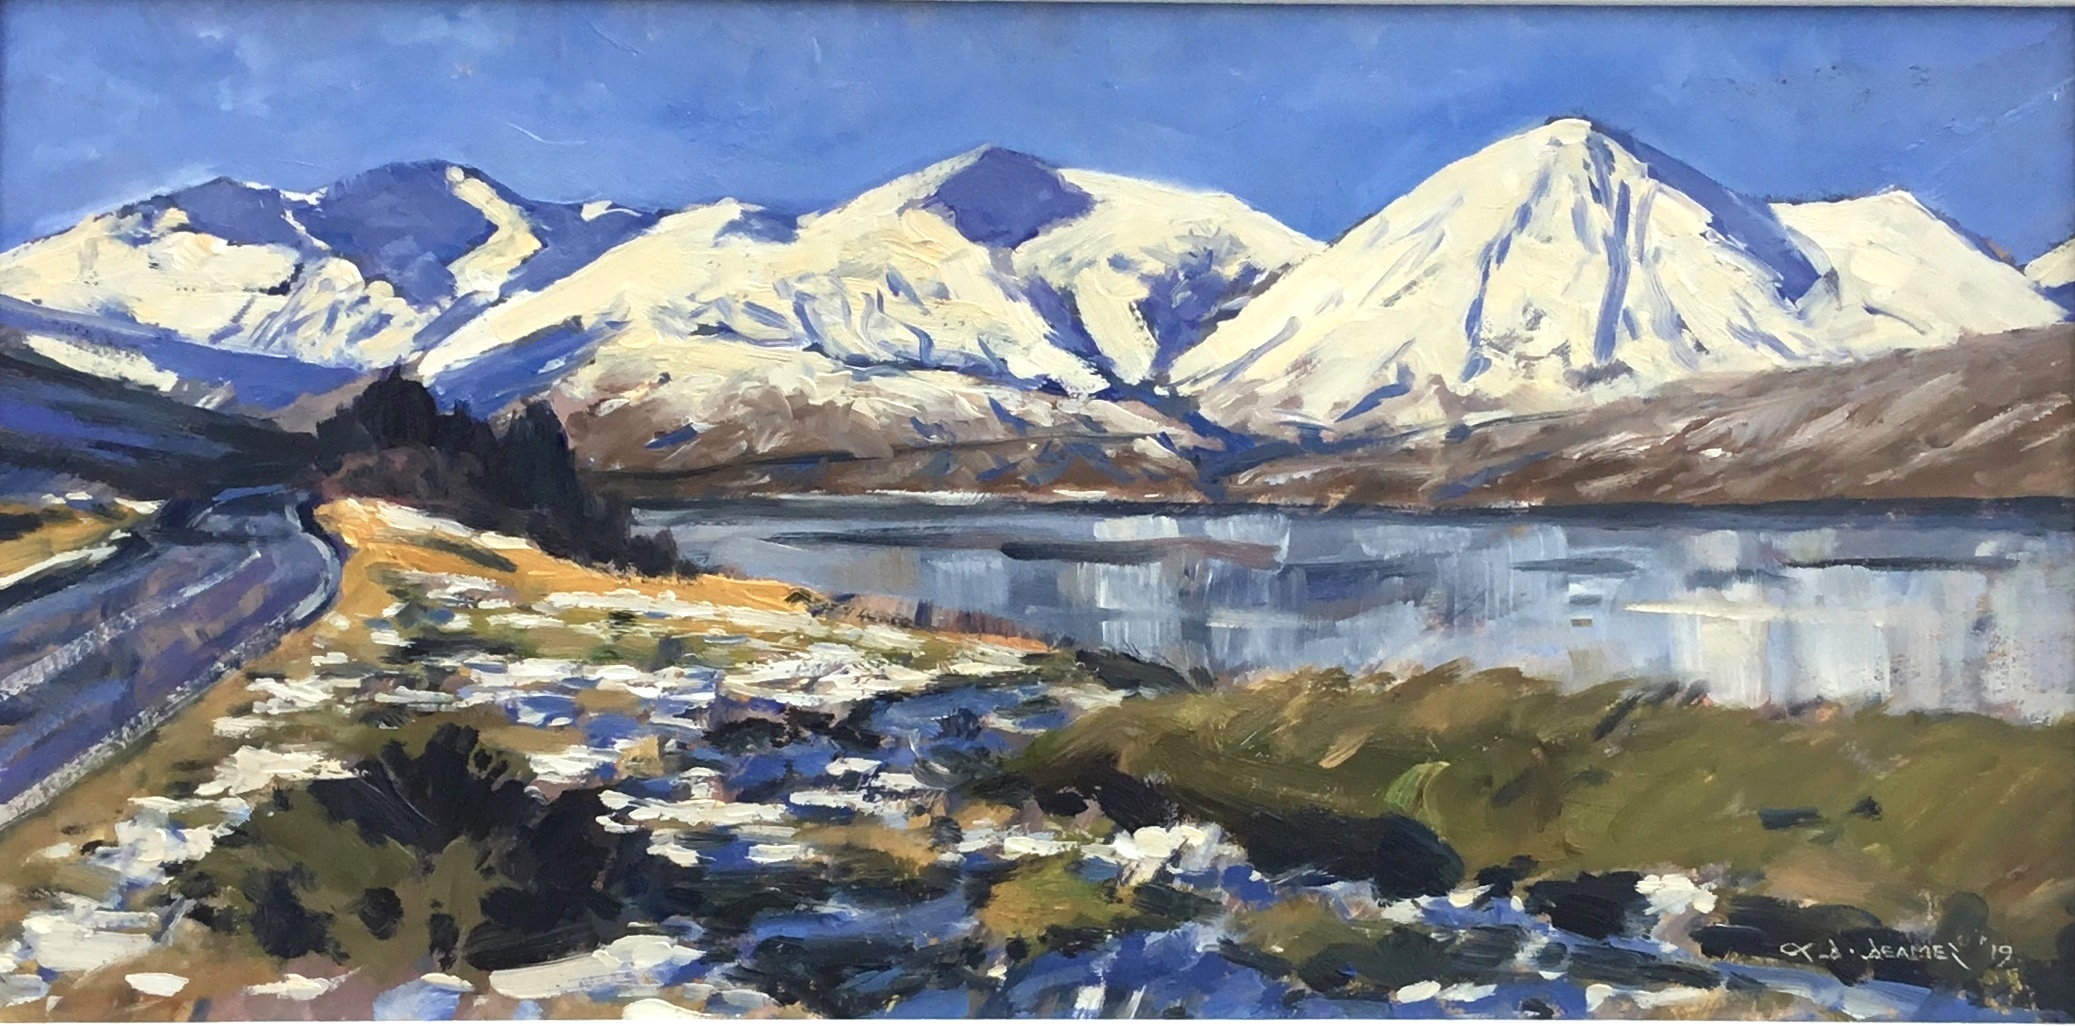 'Snow at Loch Ainort' by artist David  Deamer